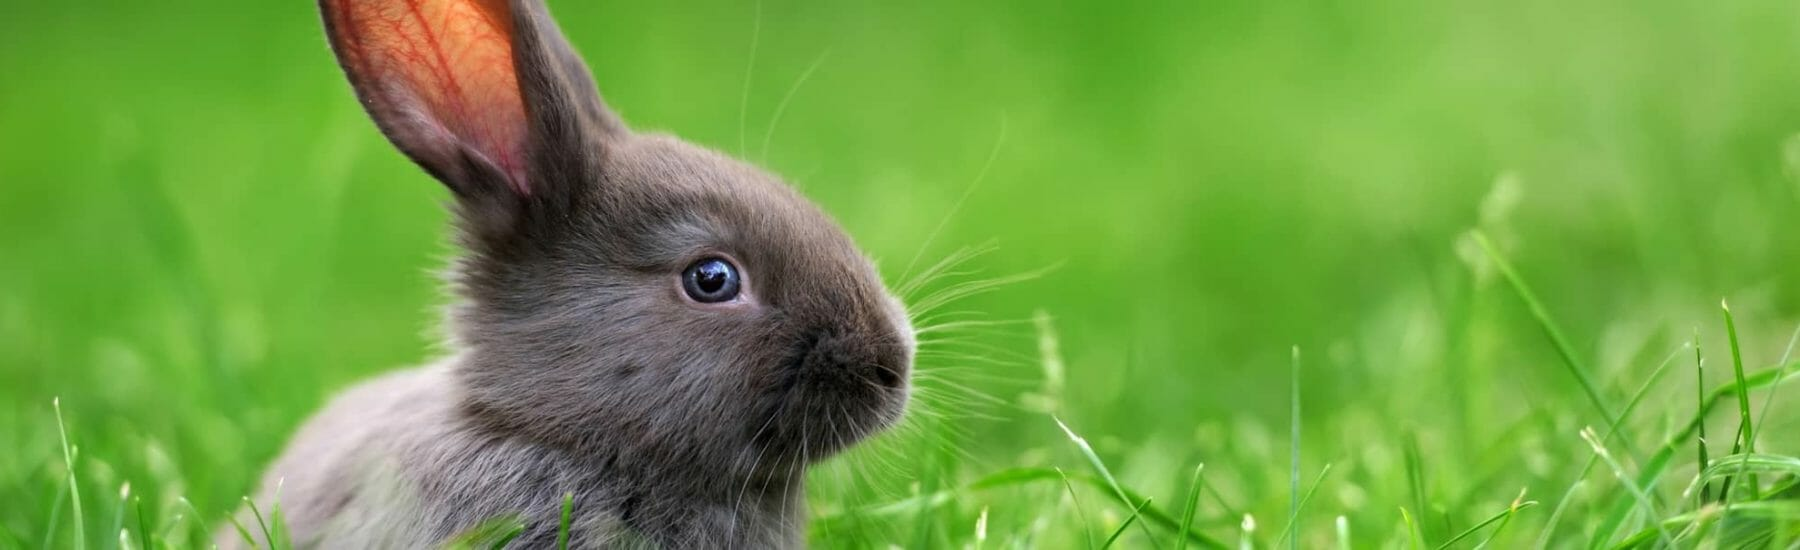 Baby bunny sitting in the green grass